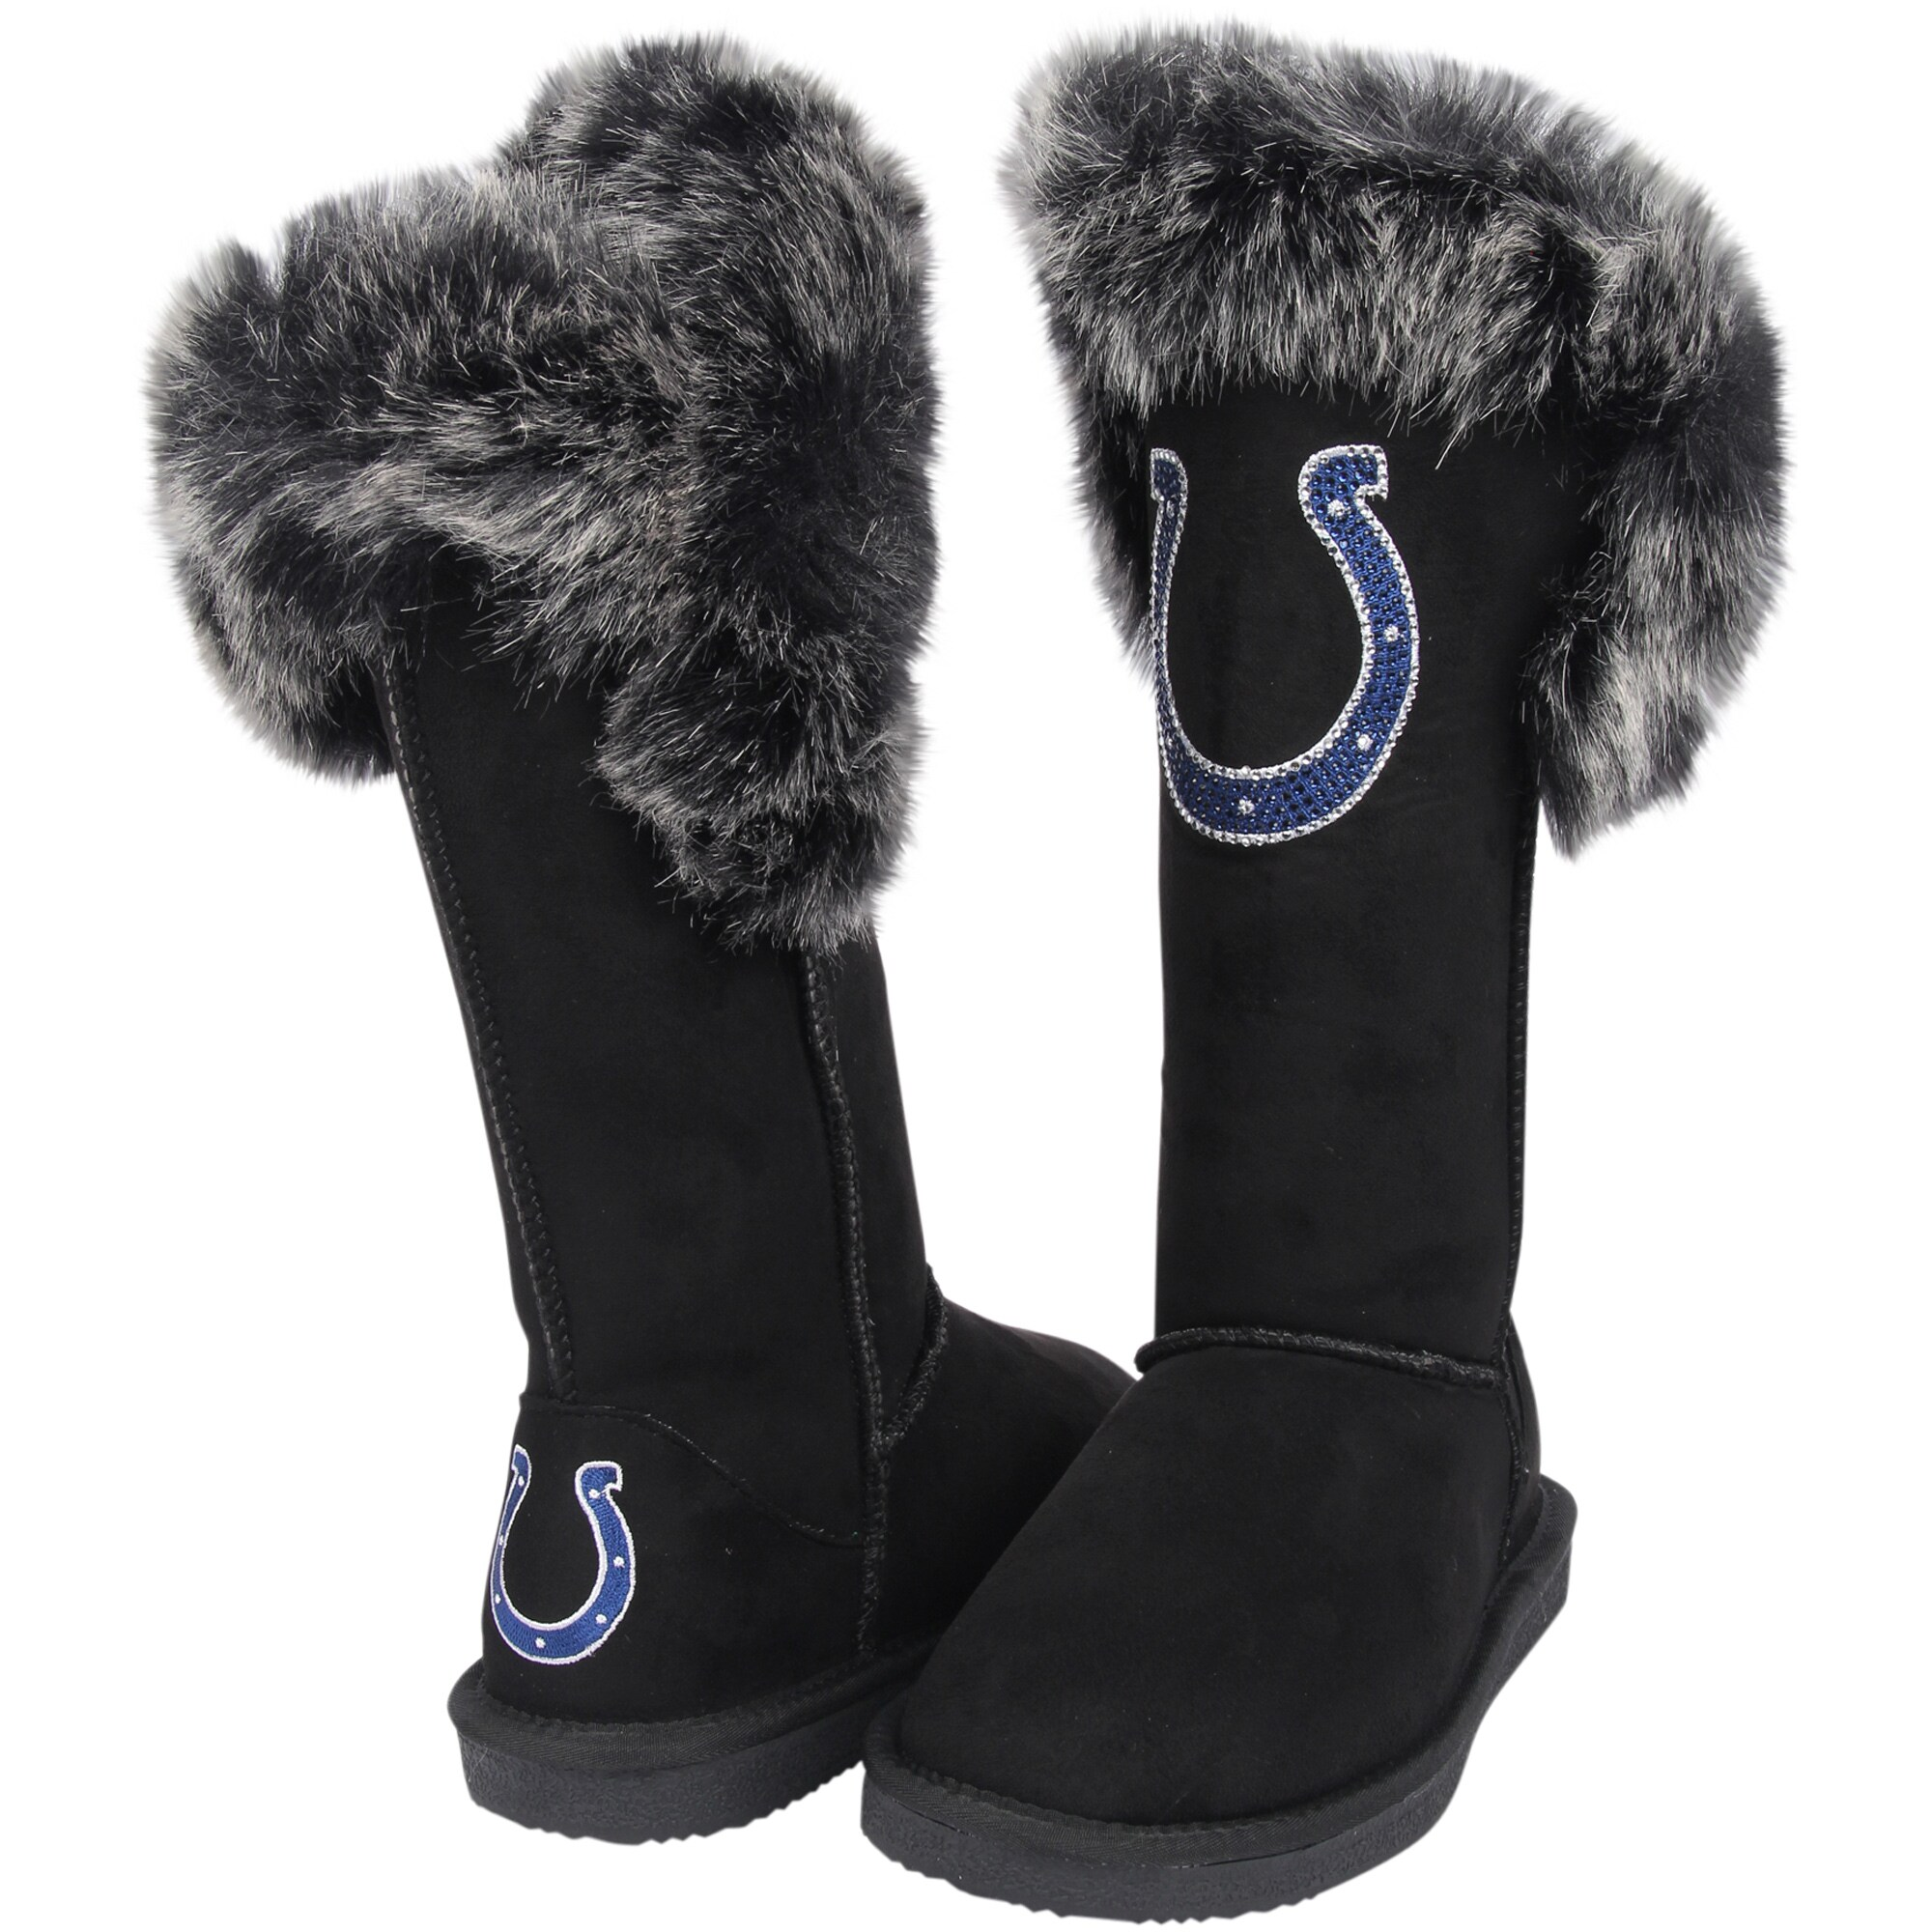 Indianapolis Colts Cuce Women's Devoted Boots - Black